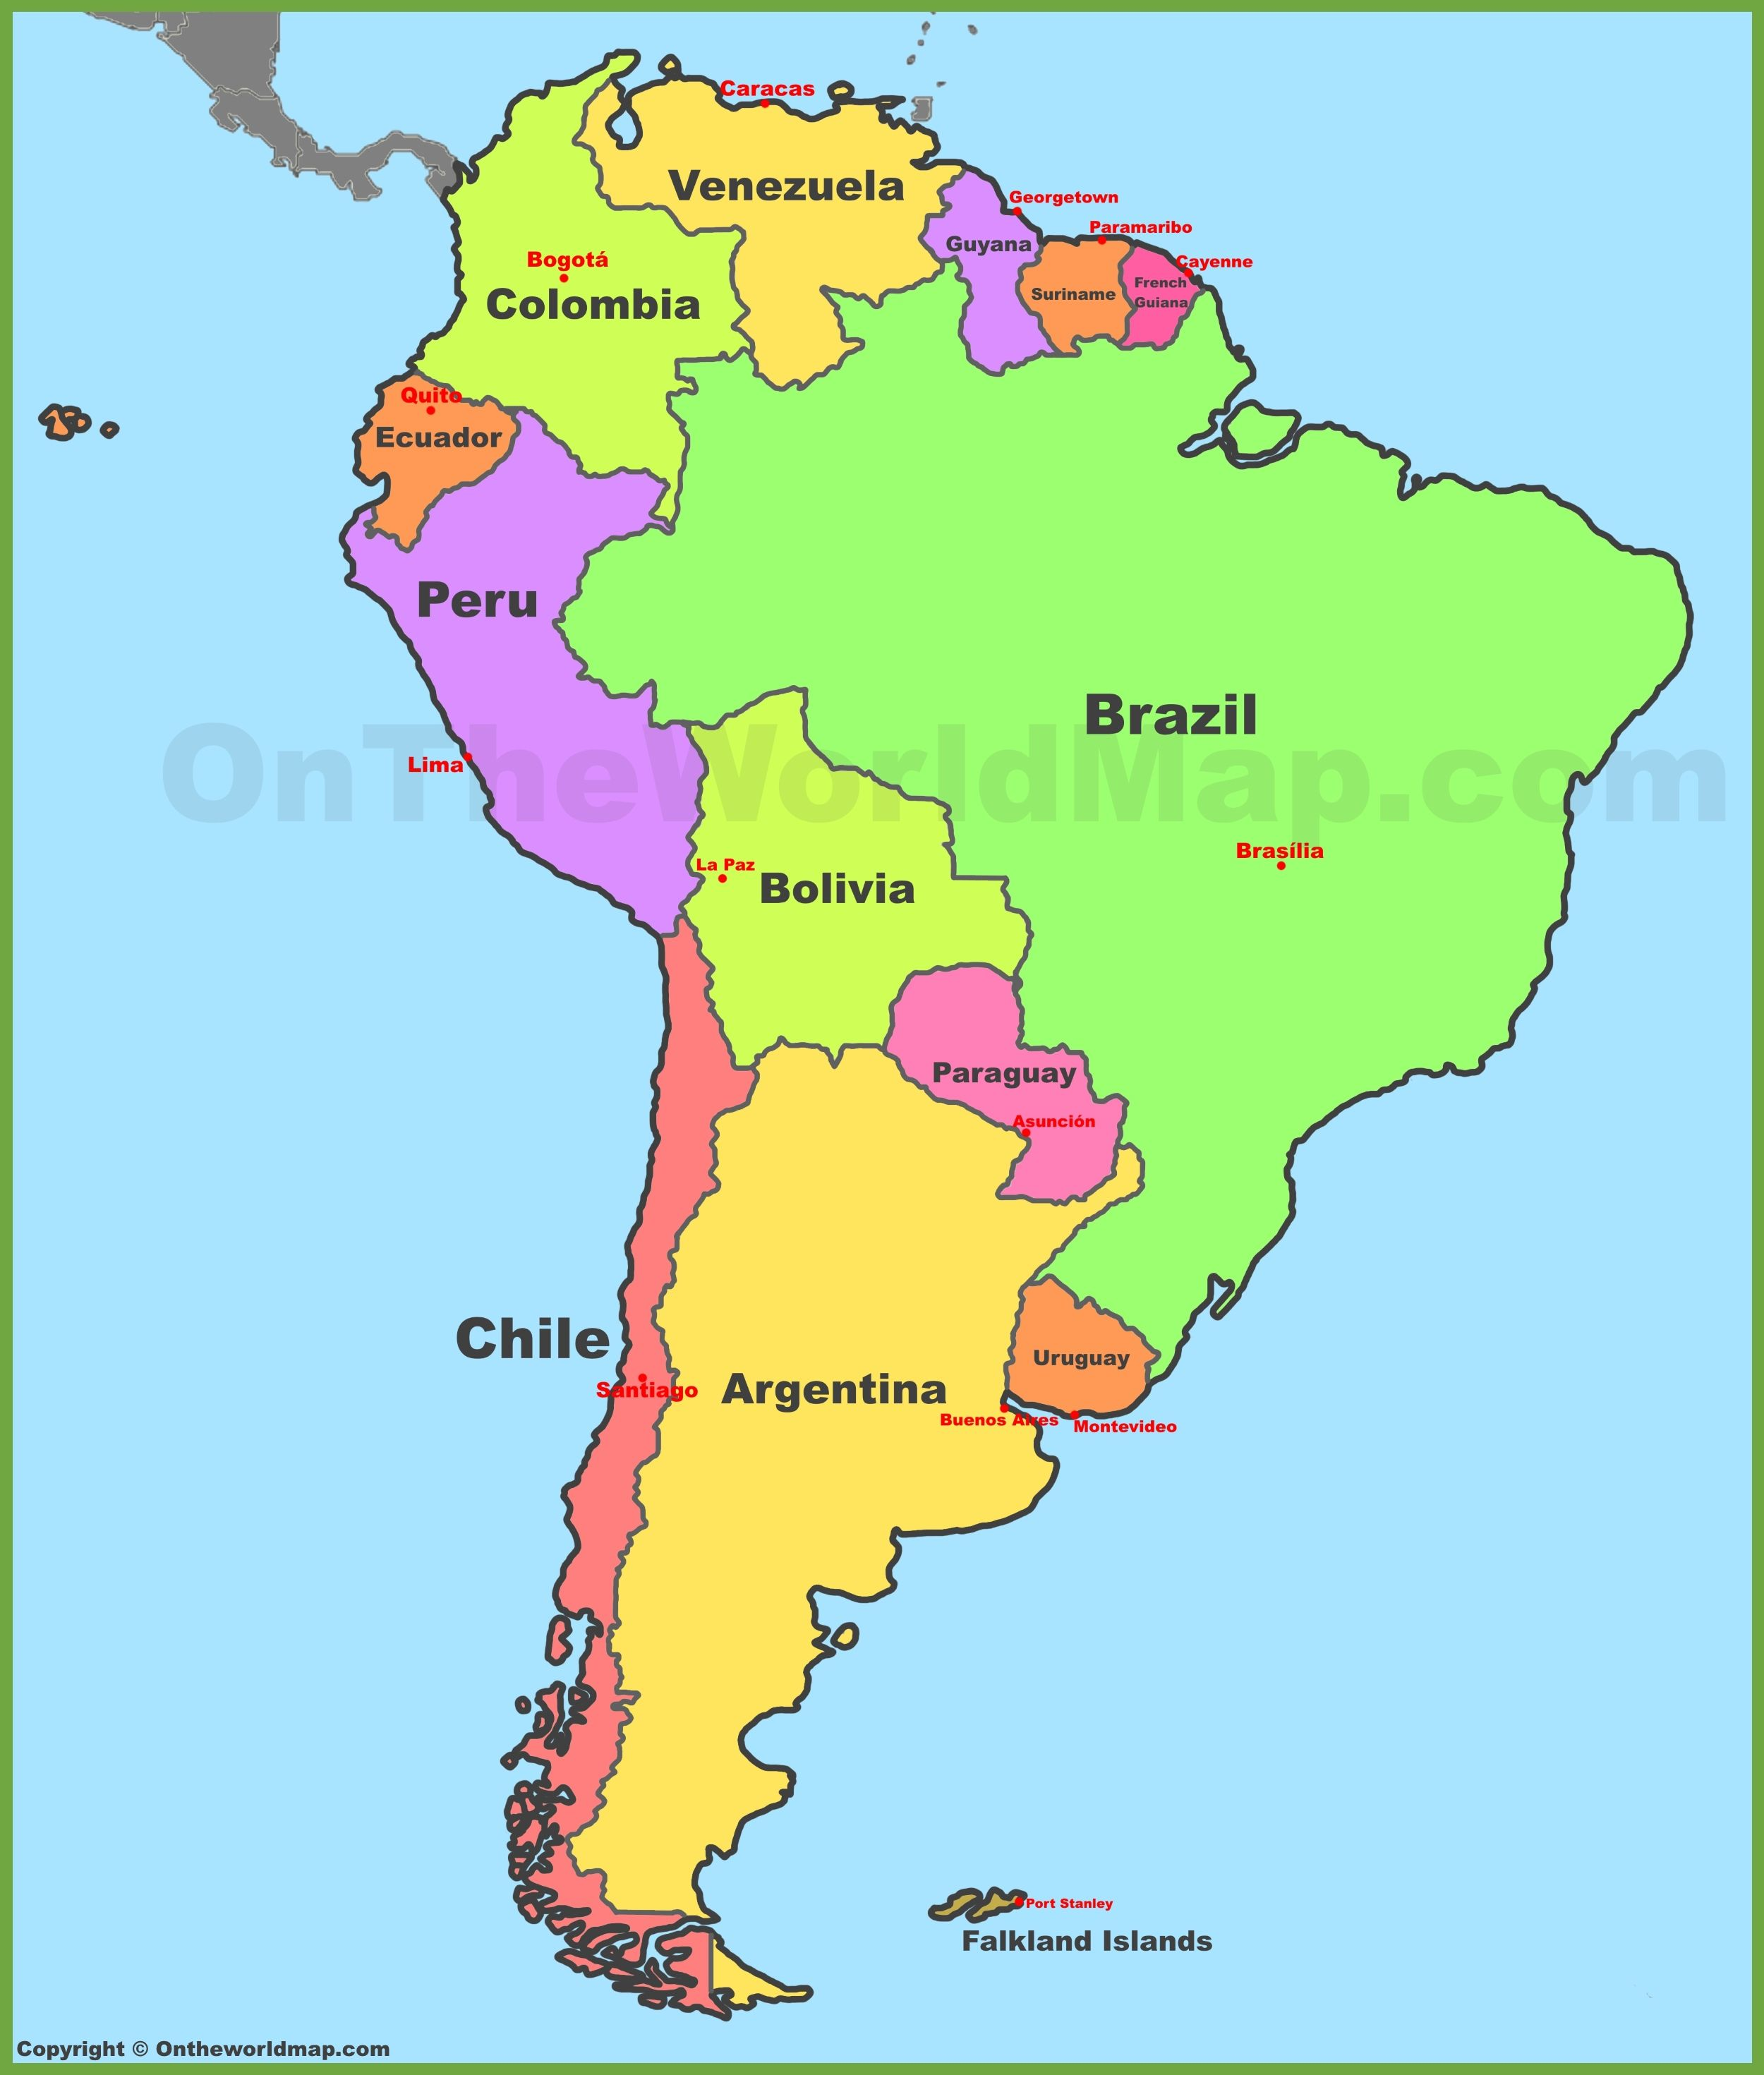 Map Of Countries In South America | south america | Pinterest